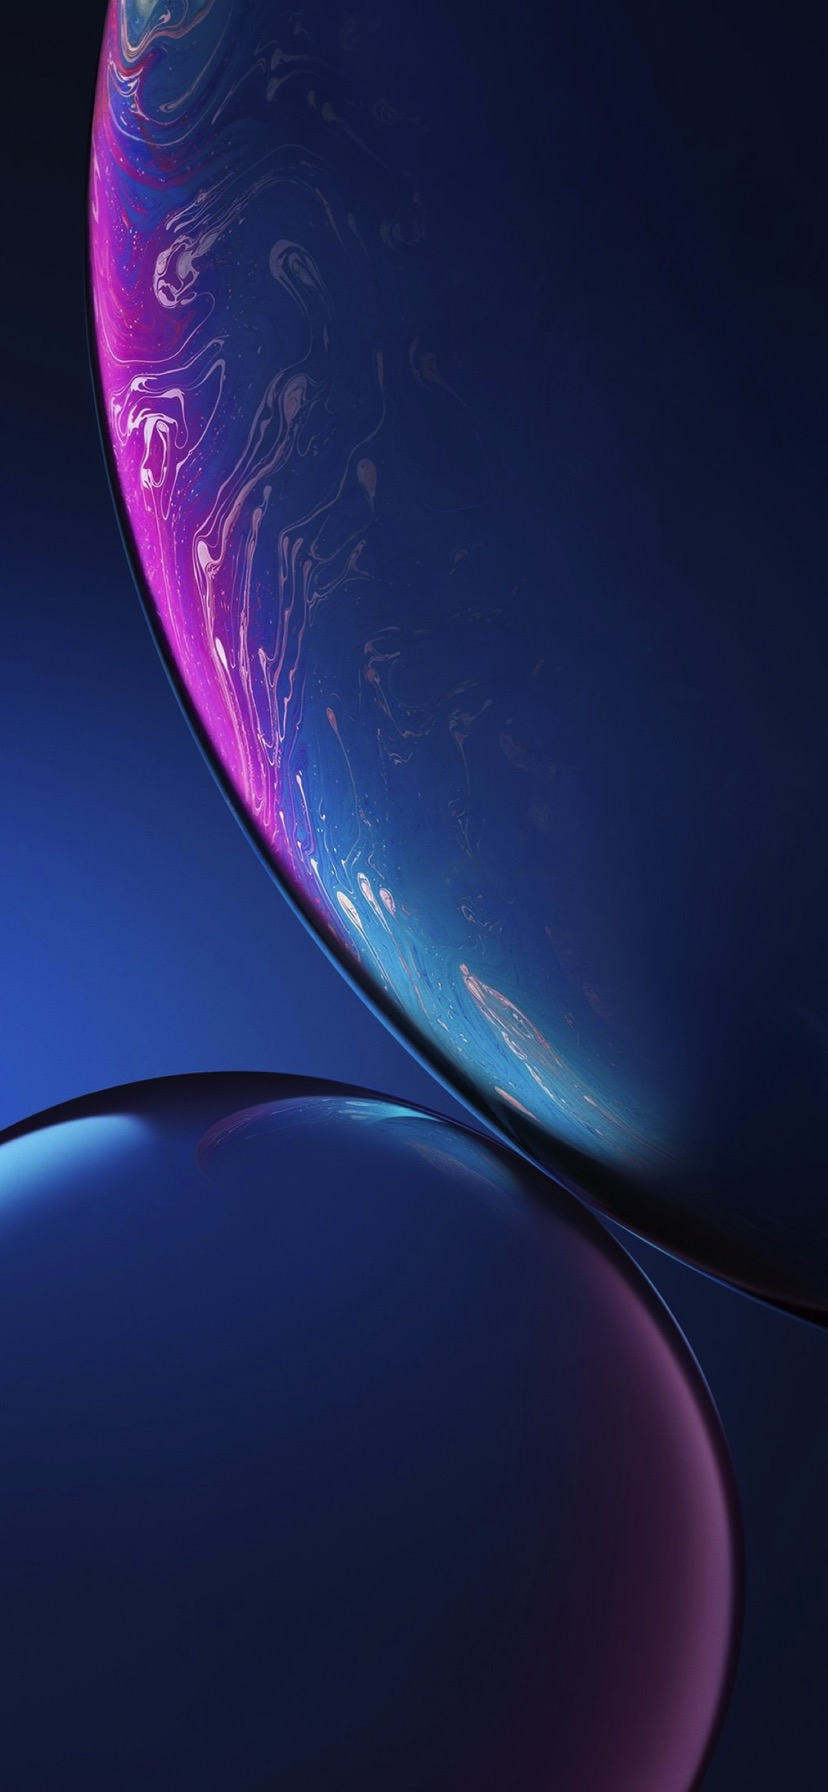 iPhone XR 壁紙 wallpaper 1088